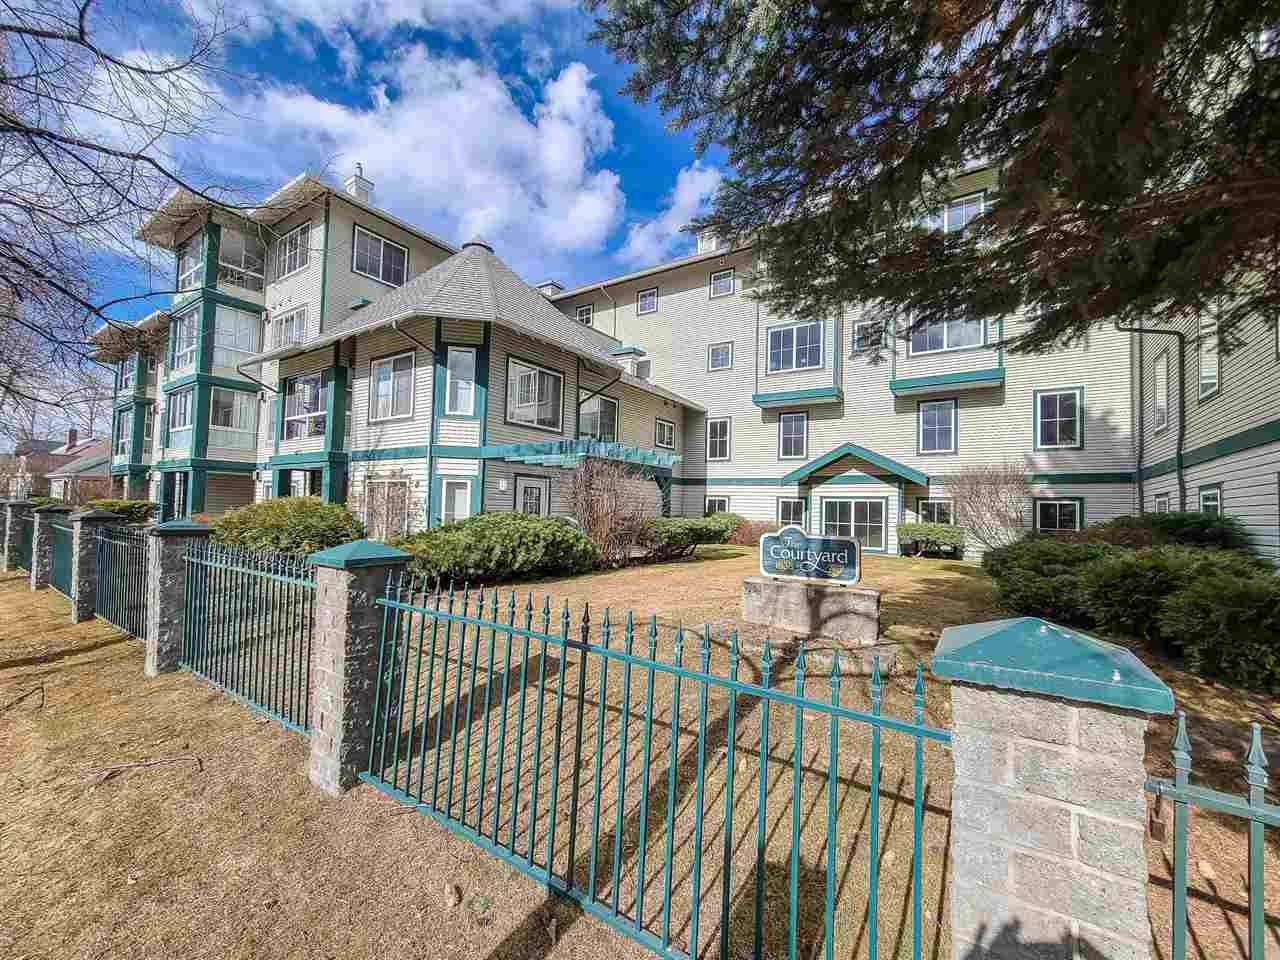 """Main Photo: 303 1638 6TH Avenue in Prince George: Downtown PG Condo for sale in """"COURT YARD ON 6TH"""" (PG City Central (Zone 72))  : MLS®# R2554096"""